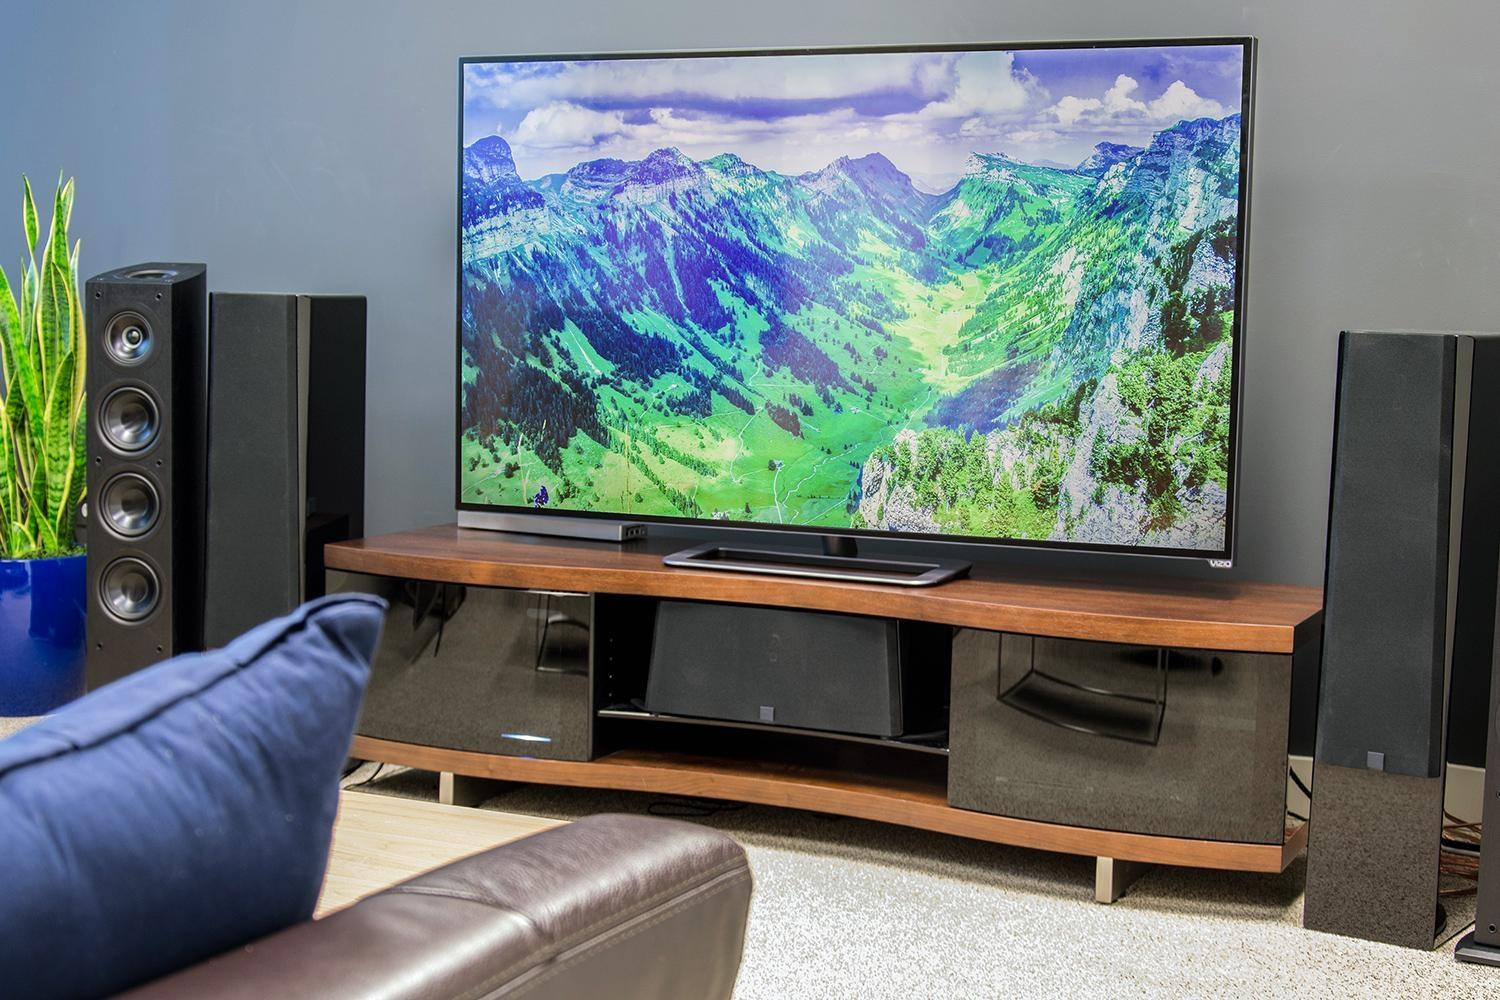 Don't buy that cheap 1080p TV! Here's why it's finally time to go 4K